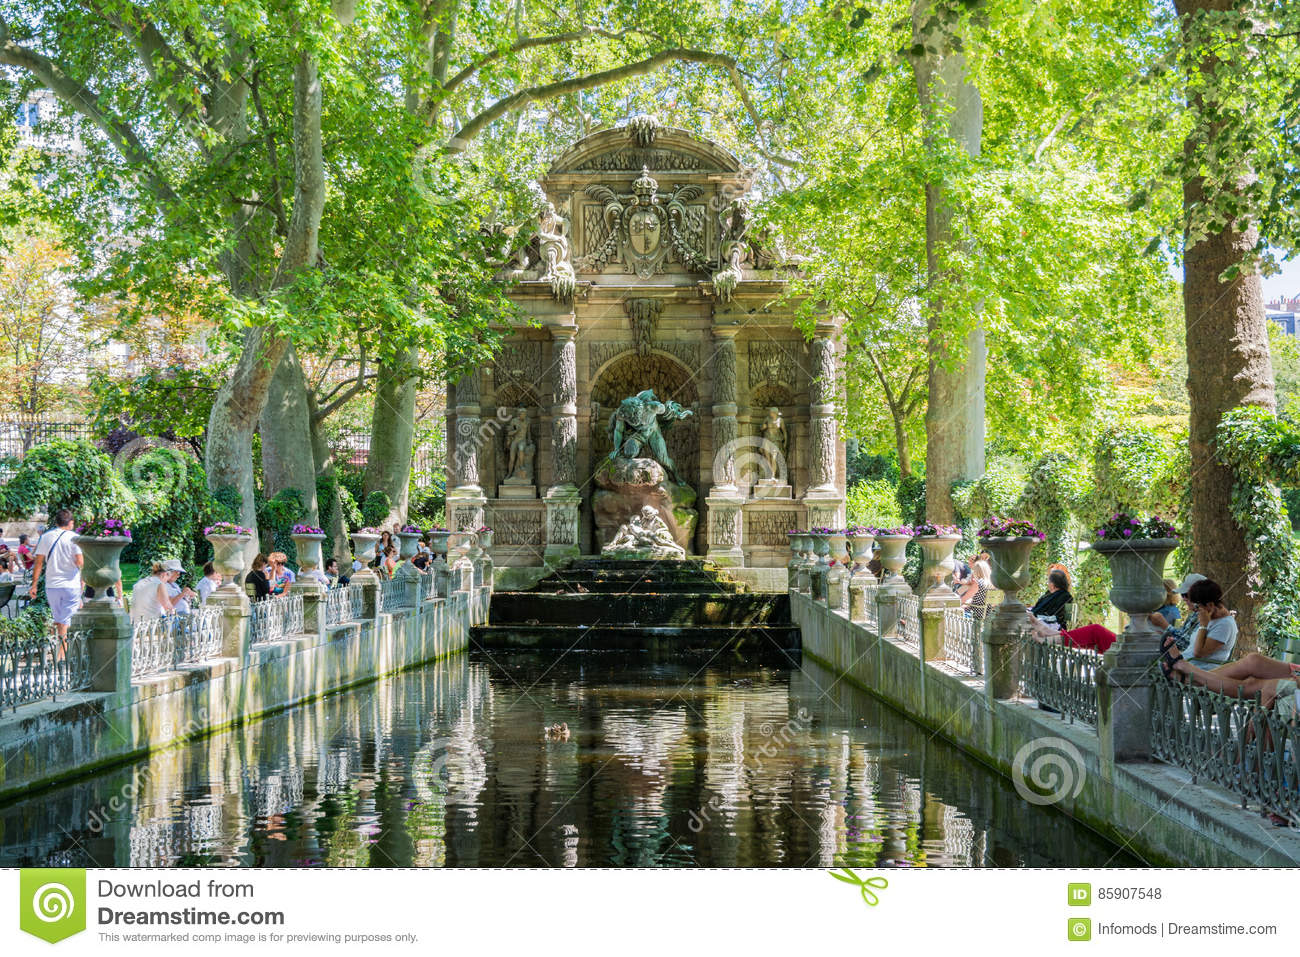 The Medici Fountain in the Luxembourg garden, Paris.